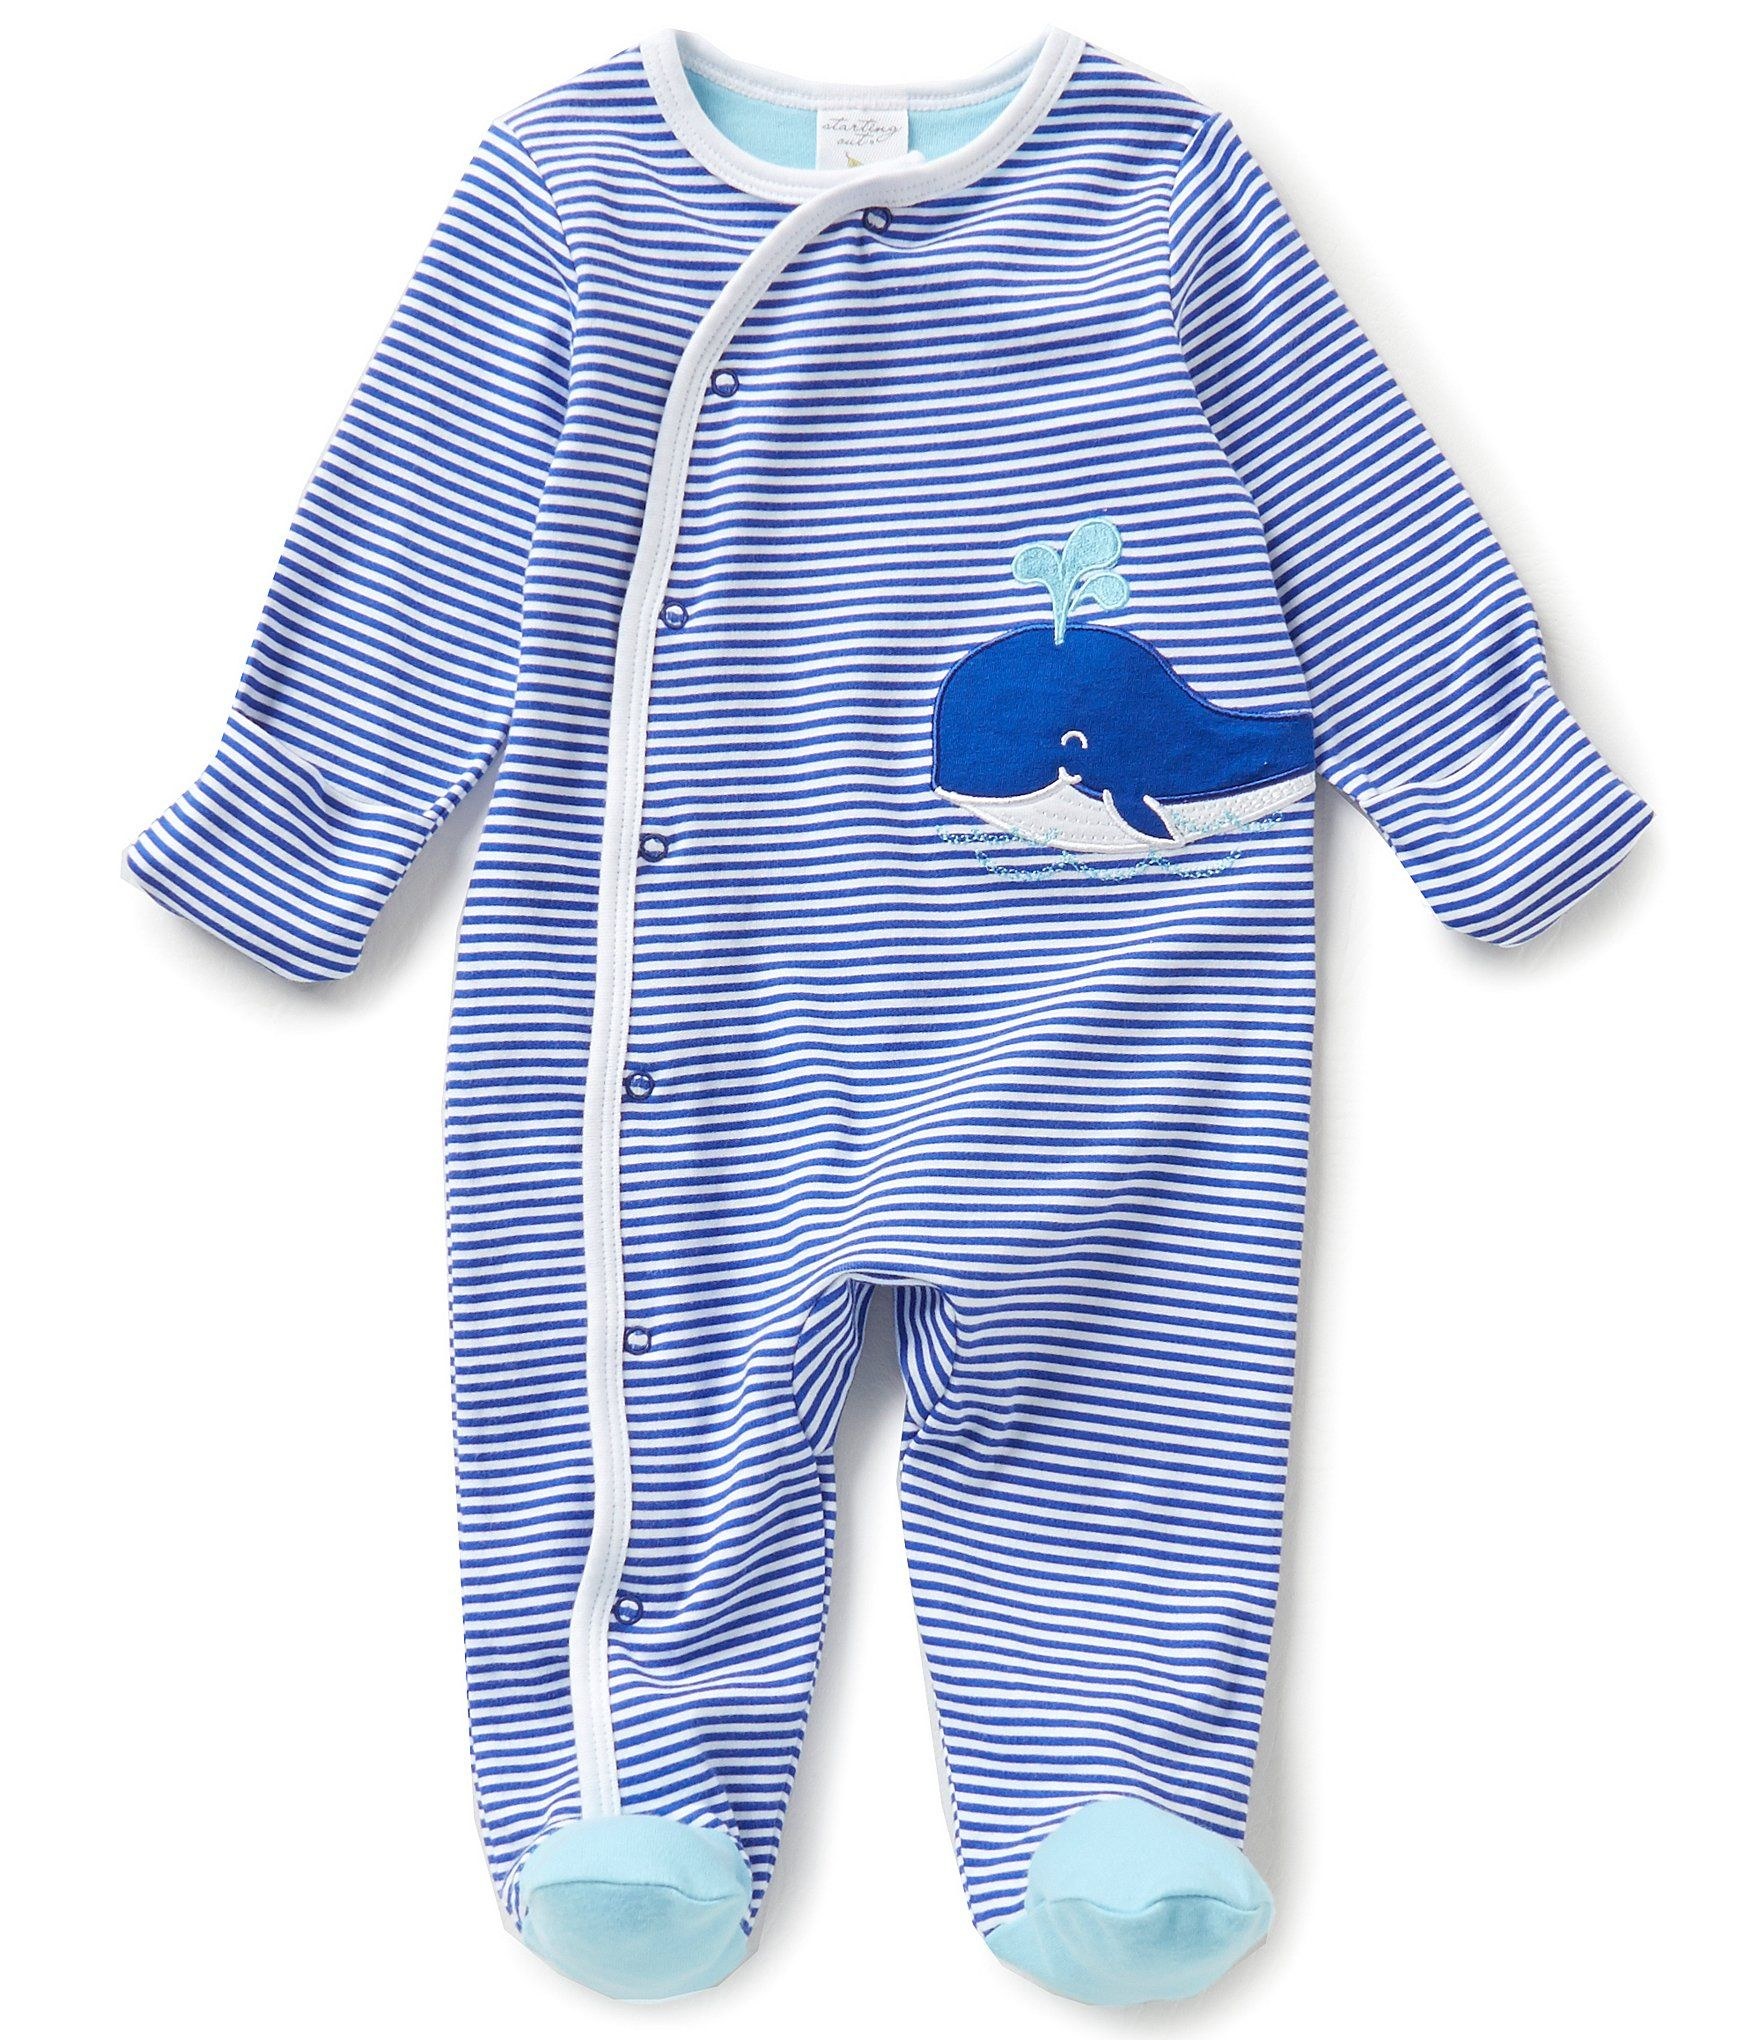 Starting Out Baby Boys Newborn6 Months Striped Nautical Footed